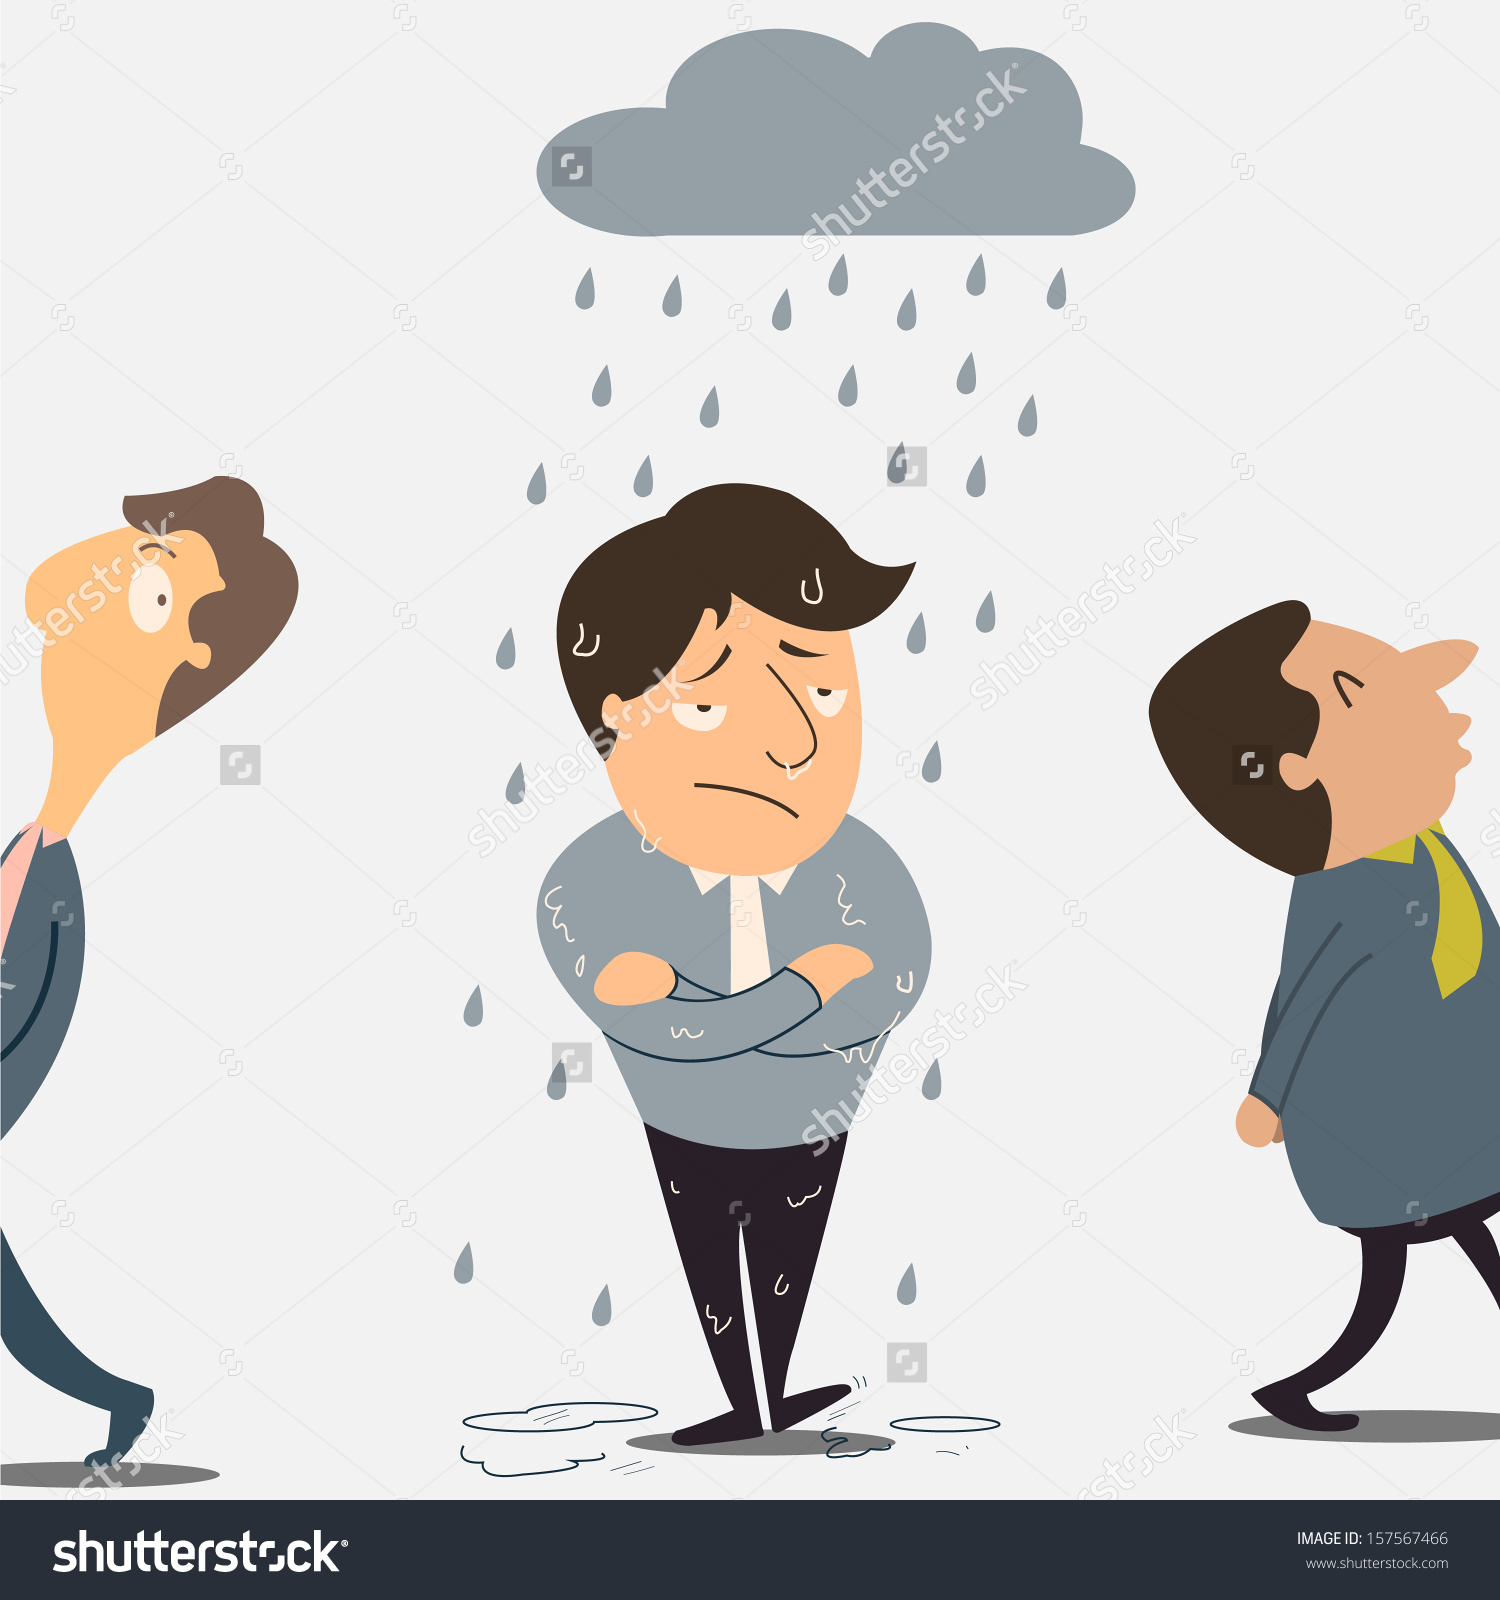 Lucky person clipart clip art transparent library Why Bad Luck Happening Only On Stock Vector 157567466 - Shutterstock clip art transparent library